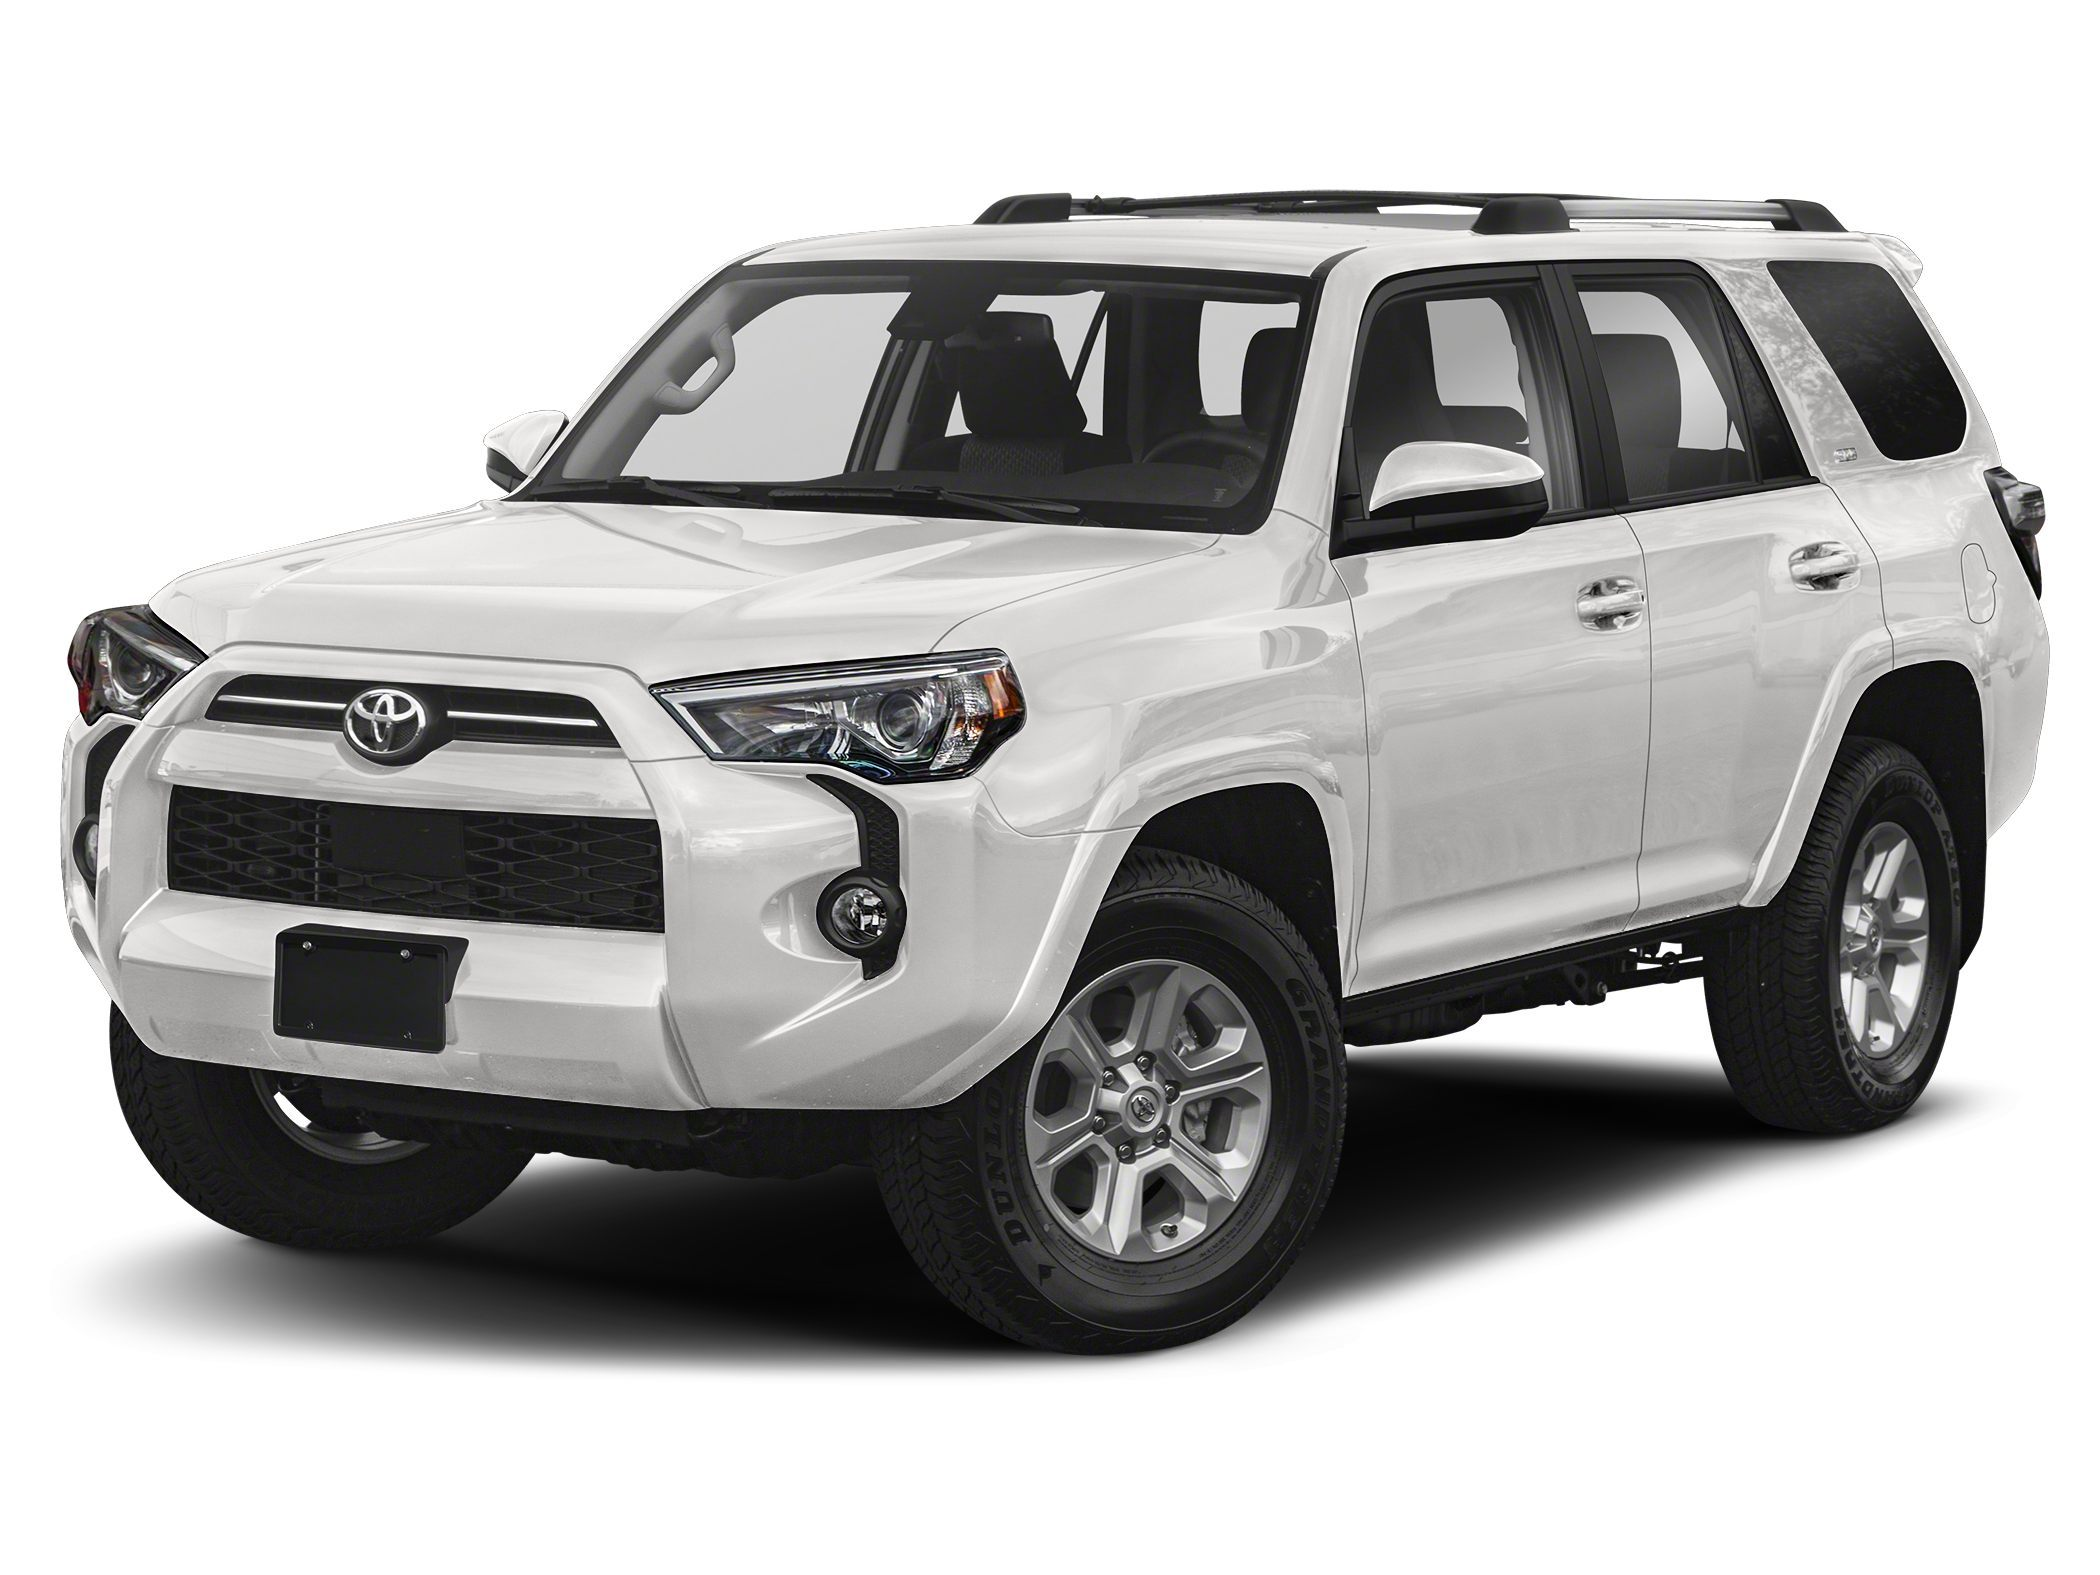 New 2021 Toyota 4runner For Sale At Fowler Toyota Of Tulsa Vin Jtefu5jr0m5234183